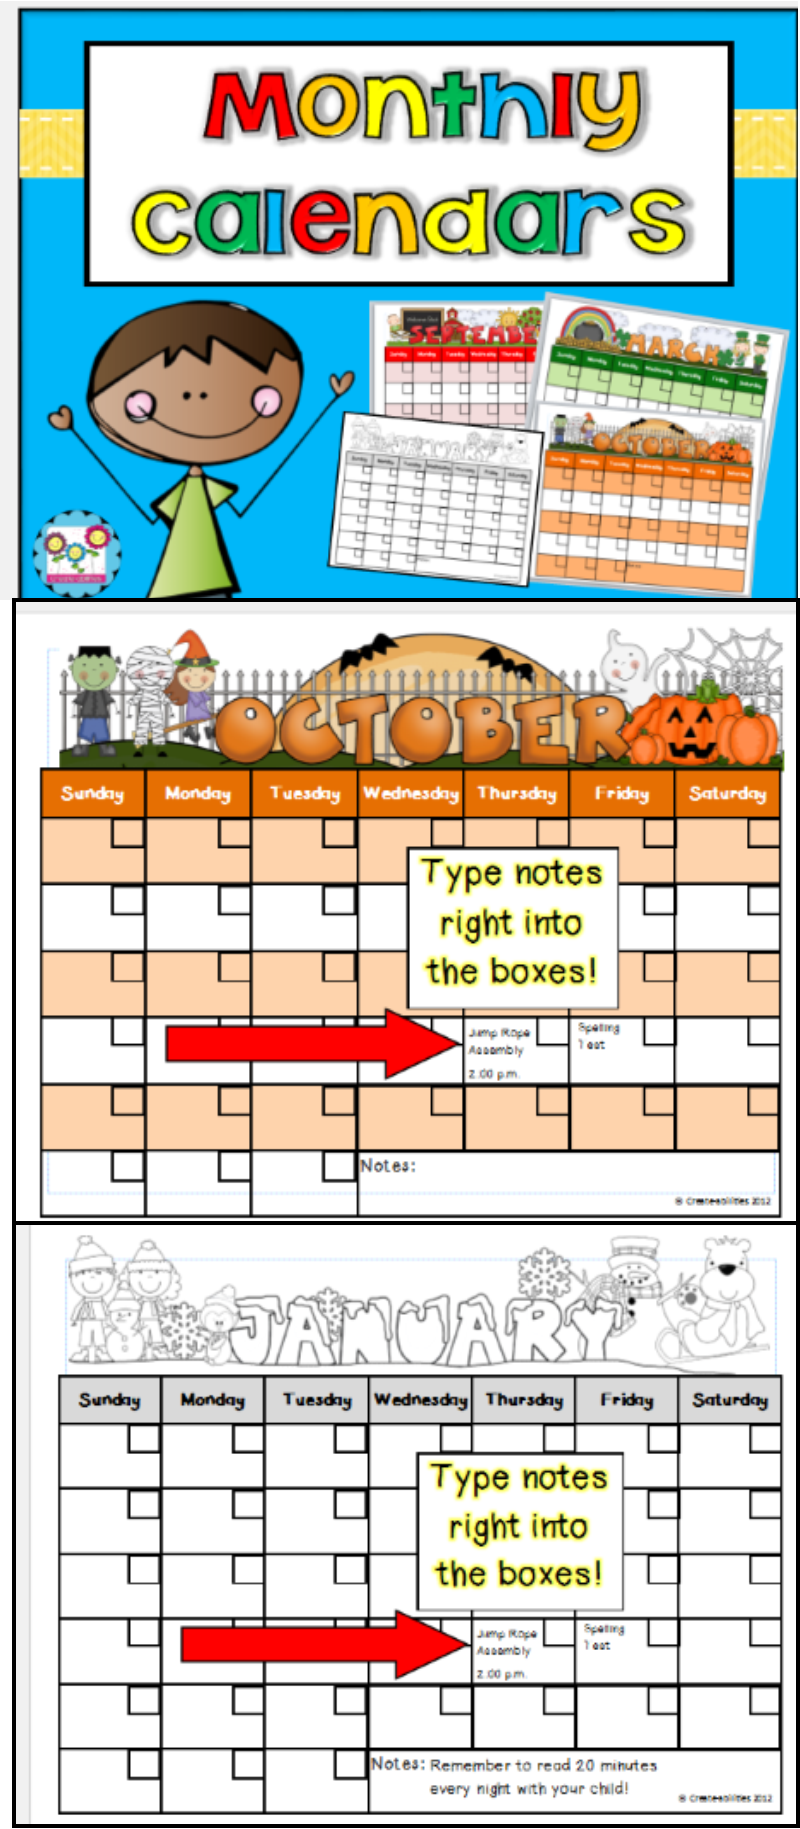 Classroom Calendar Printable : Monthly calendar templates editable firstgradefaculty